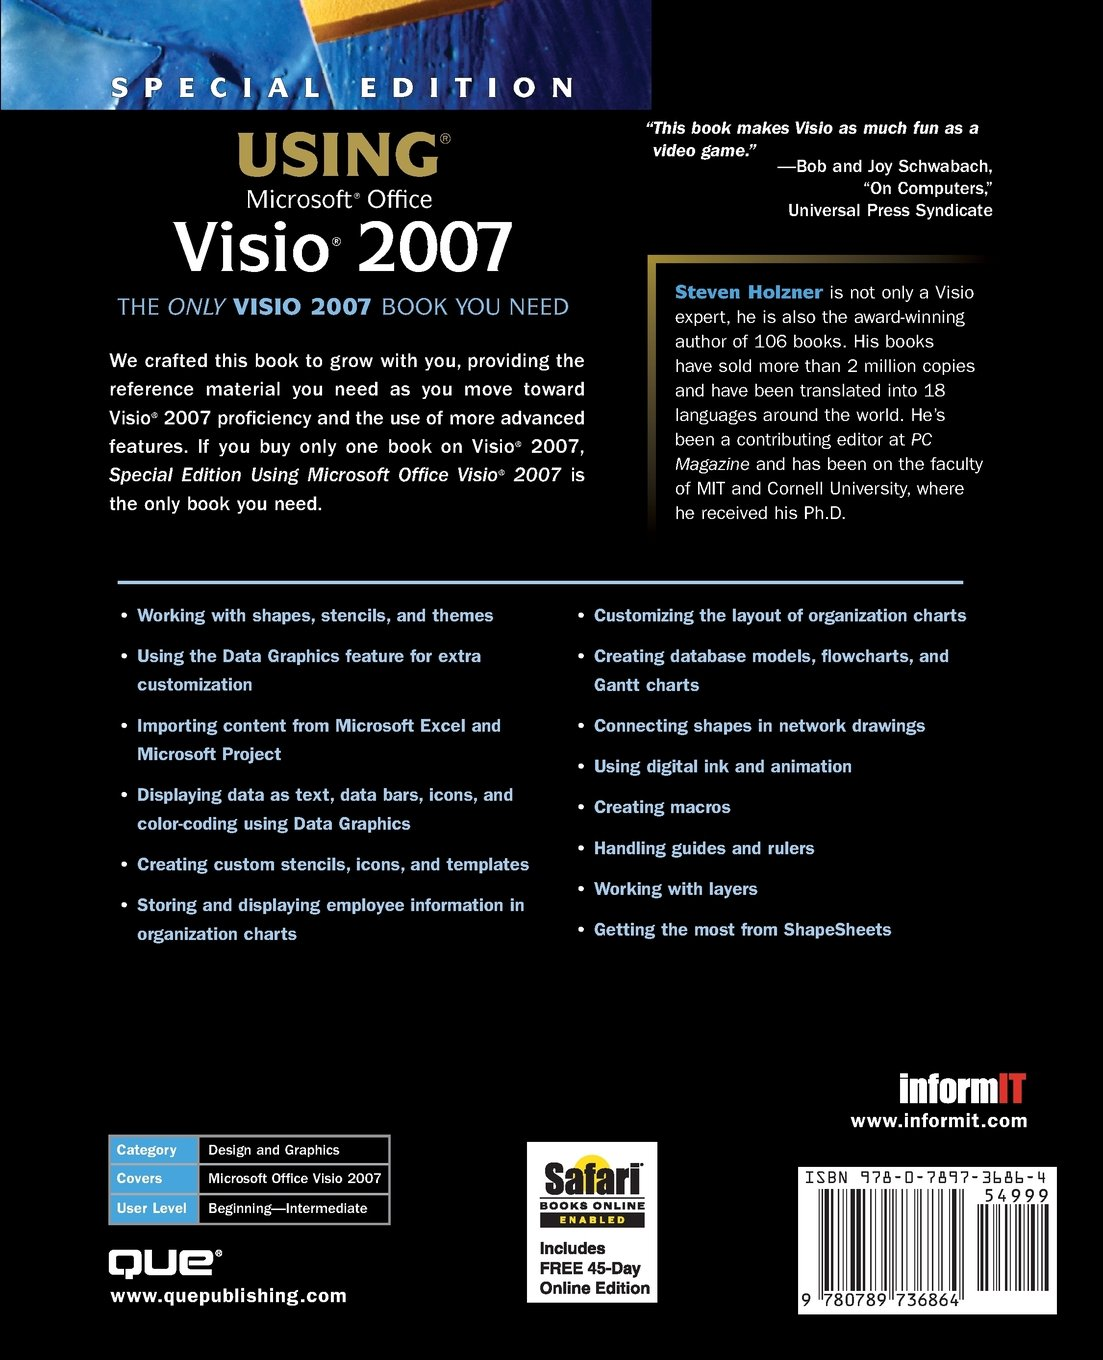 Special Edition Using Microsoft Office Visio 2007: Amazon co uk